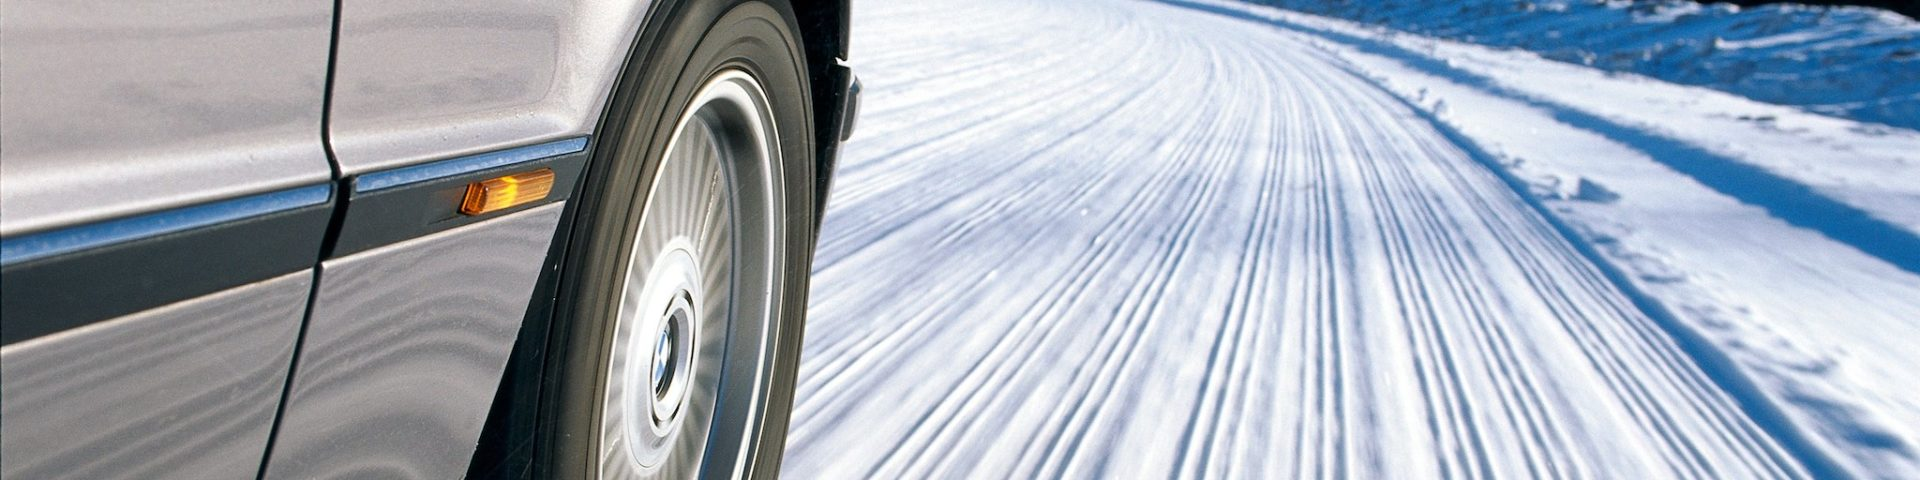 All Seasons SUV Tires